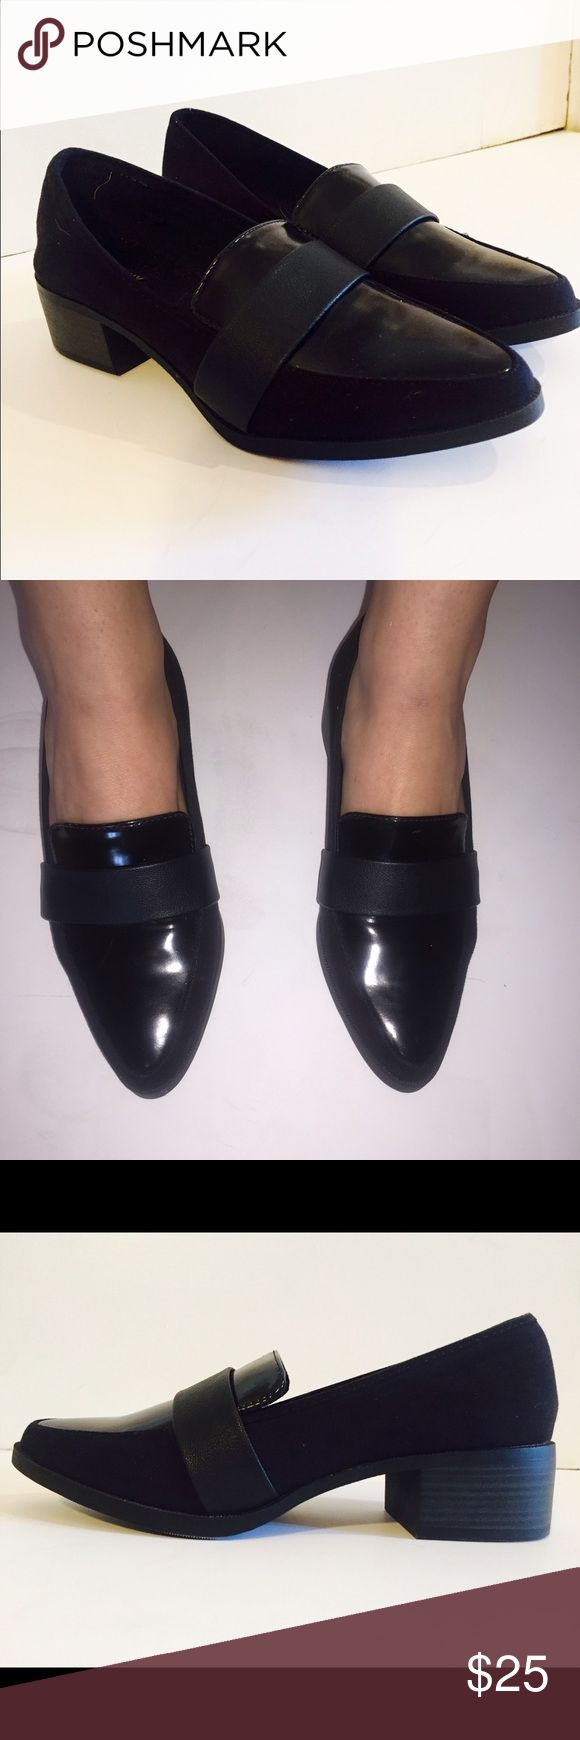 Black Suede Loafers Trendy Black Suede Loafers with Leather Strap---Size 8---Brand New Never Been Worn! Shoes Flats & Loafers